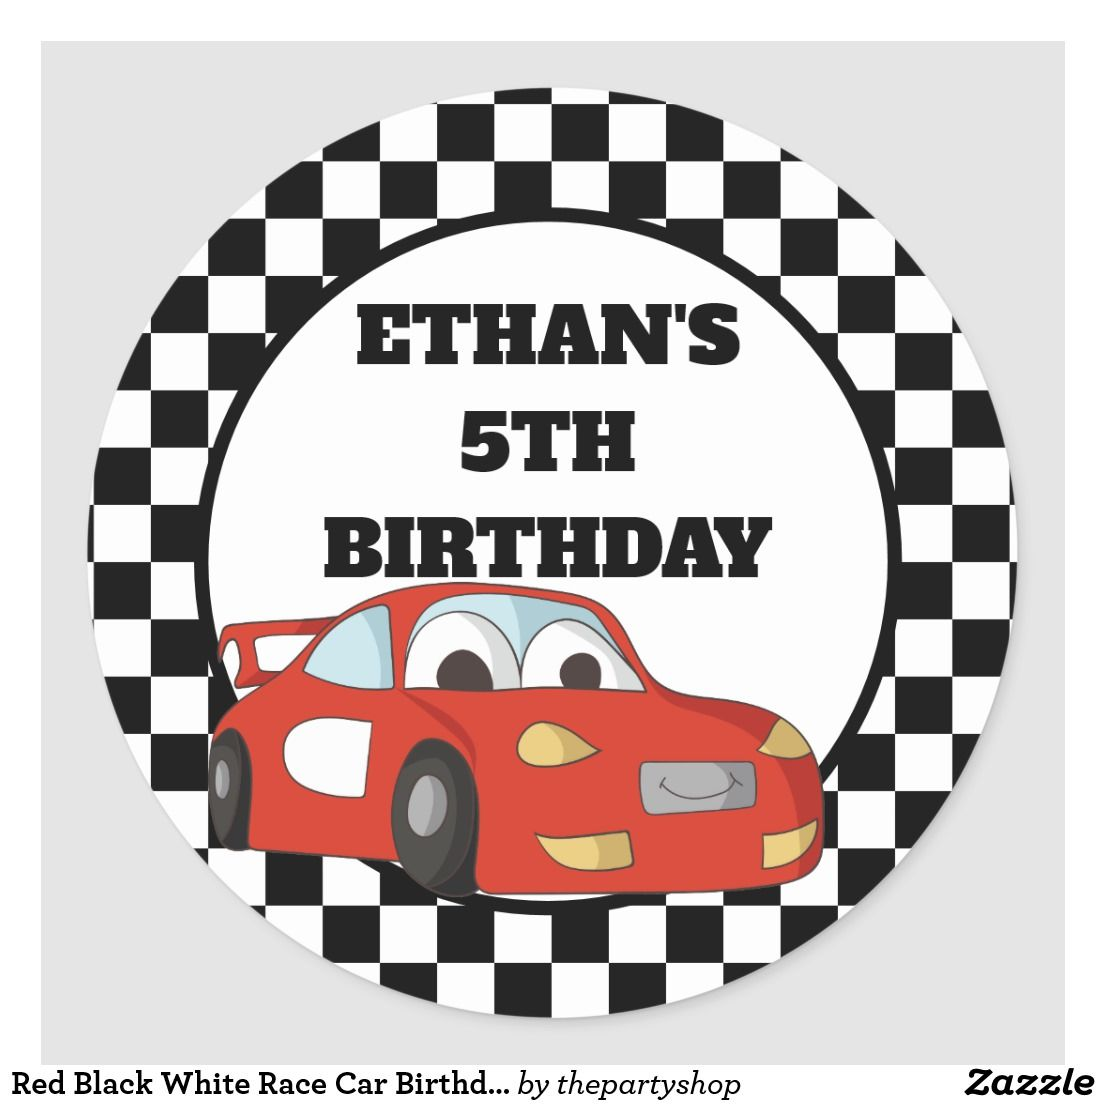 Red Black White Race Car Birthday Party Classic Round Sticker Zazzle Com Race Car Birthday Party Race Car Birthday Cars Birthday Parties [ 1106 x 1106 Pixel ]